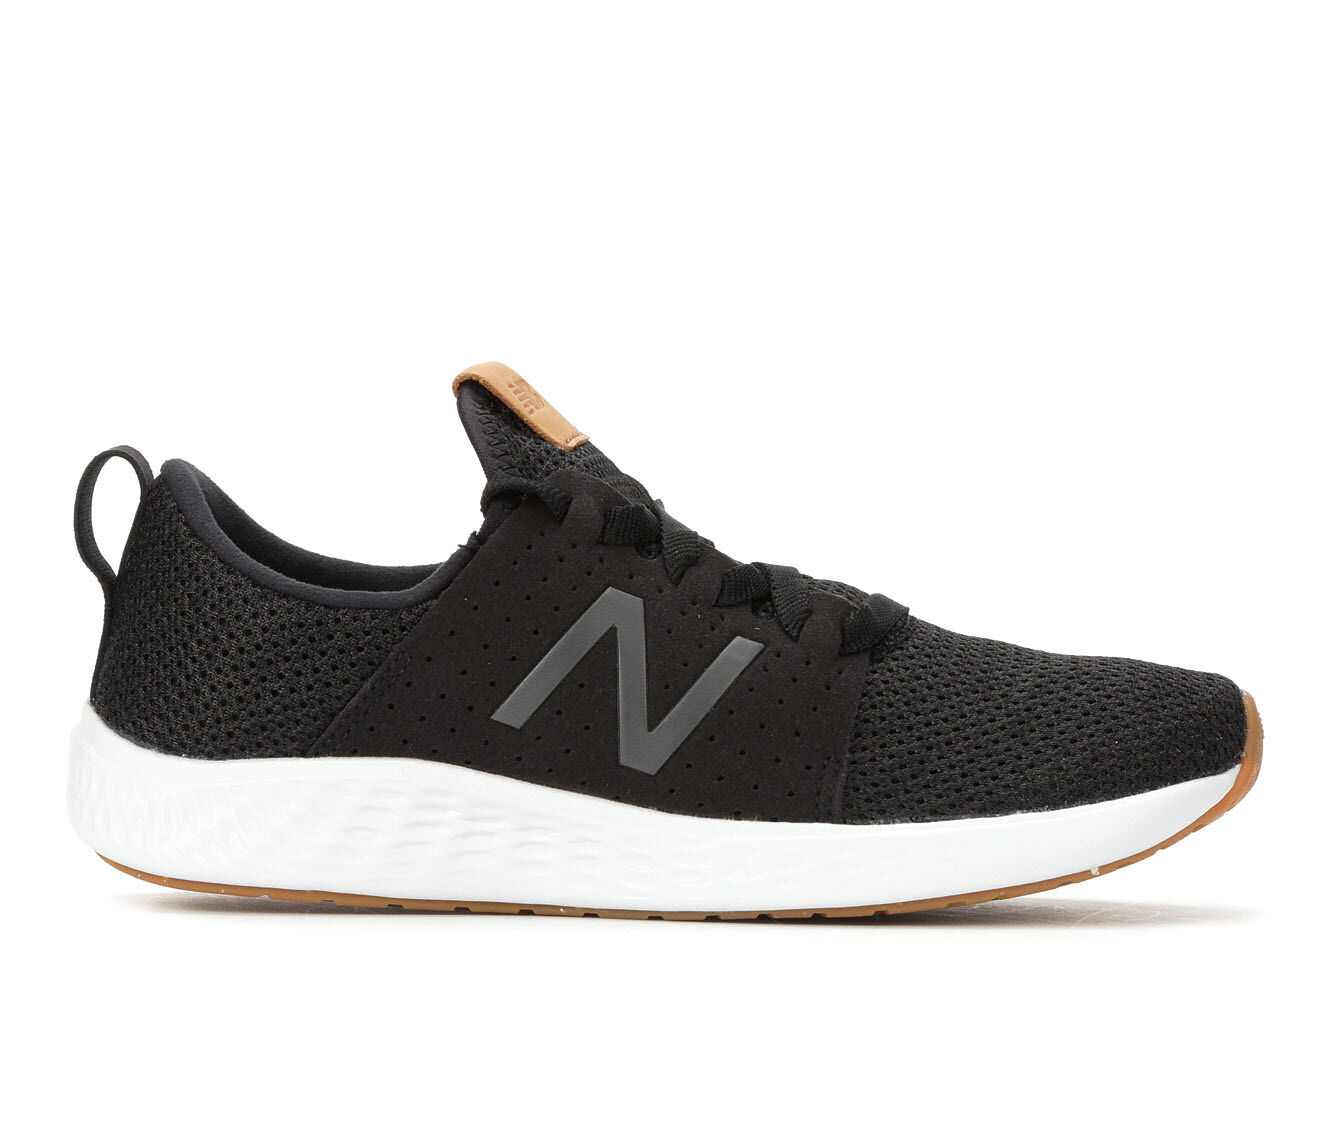 summer offer Women's New Balance Fresh Foam Sport Sneakers Black/Wht/Gum